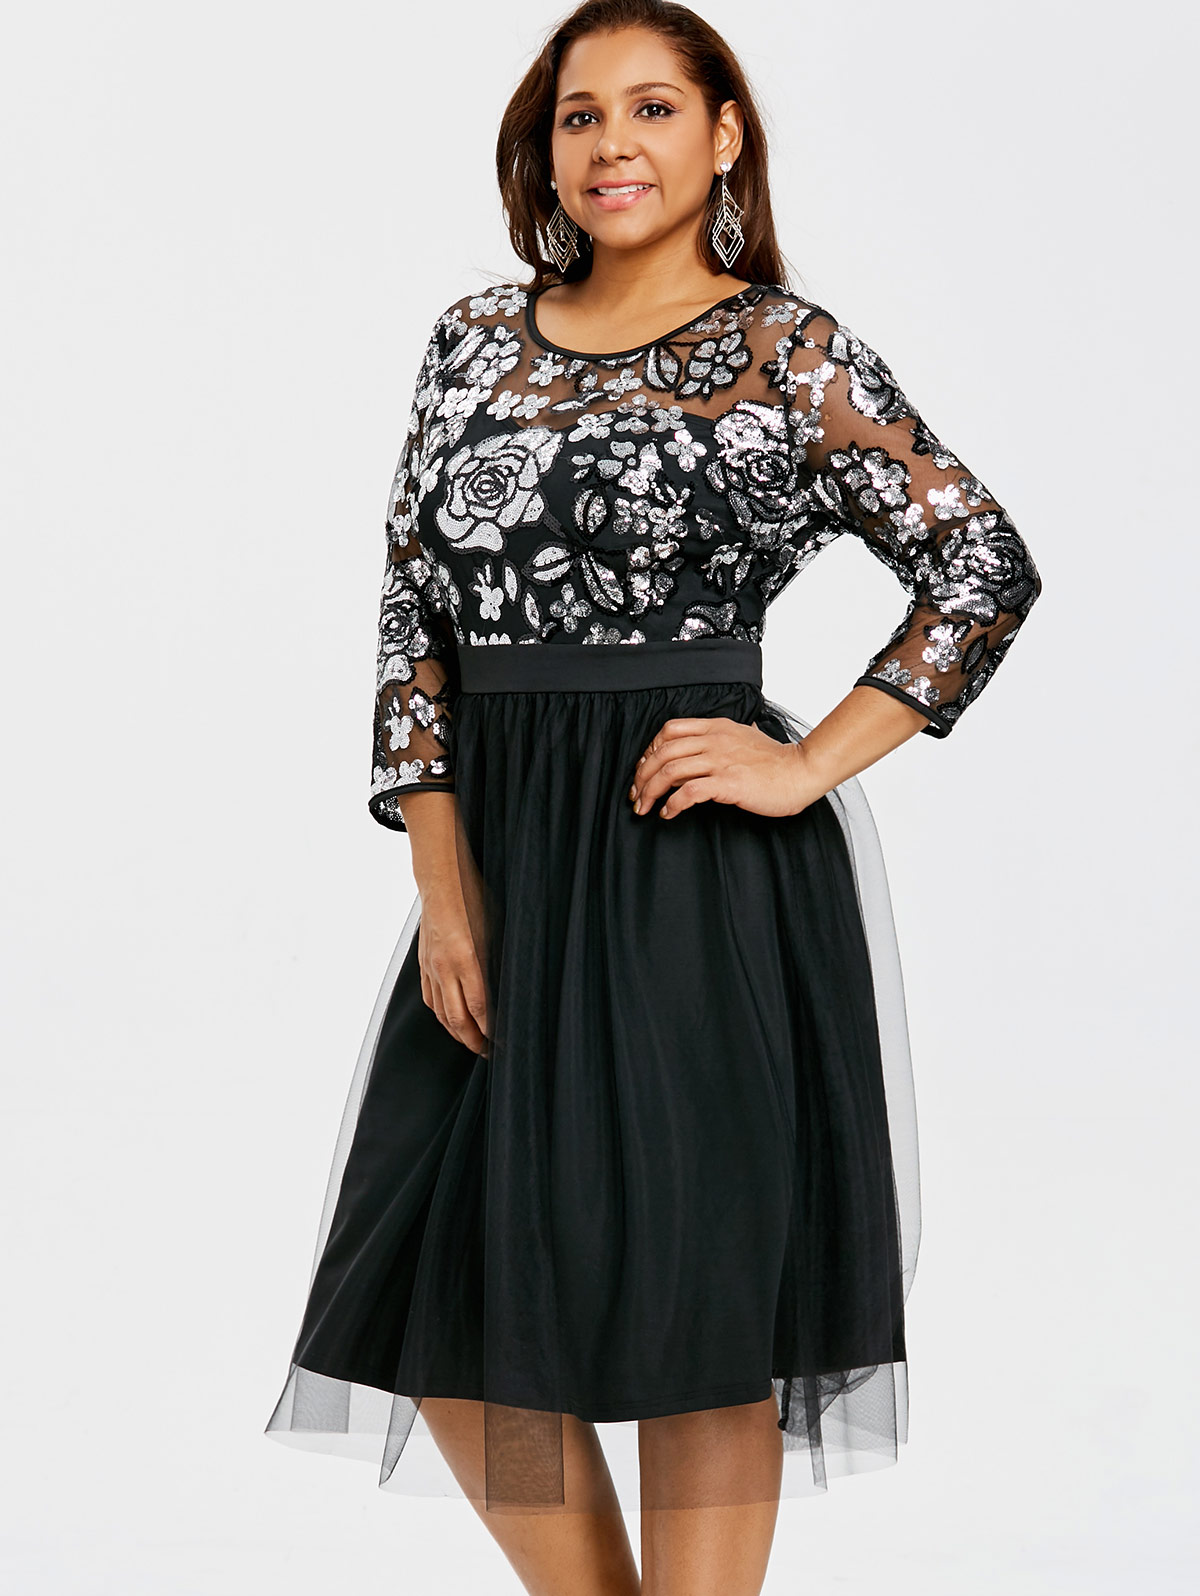 Gamiss Lace Plus Large Size Formal Party Dress Big Size Women Lace ...